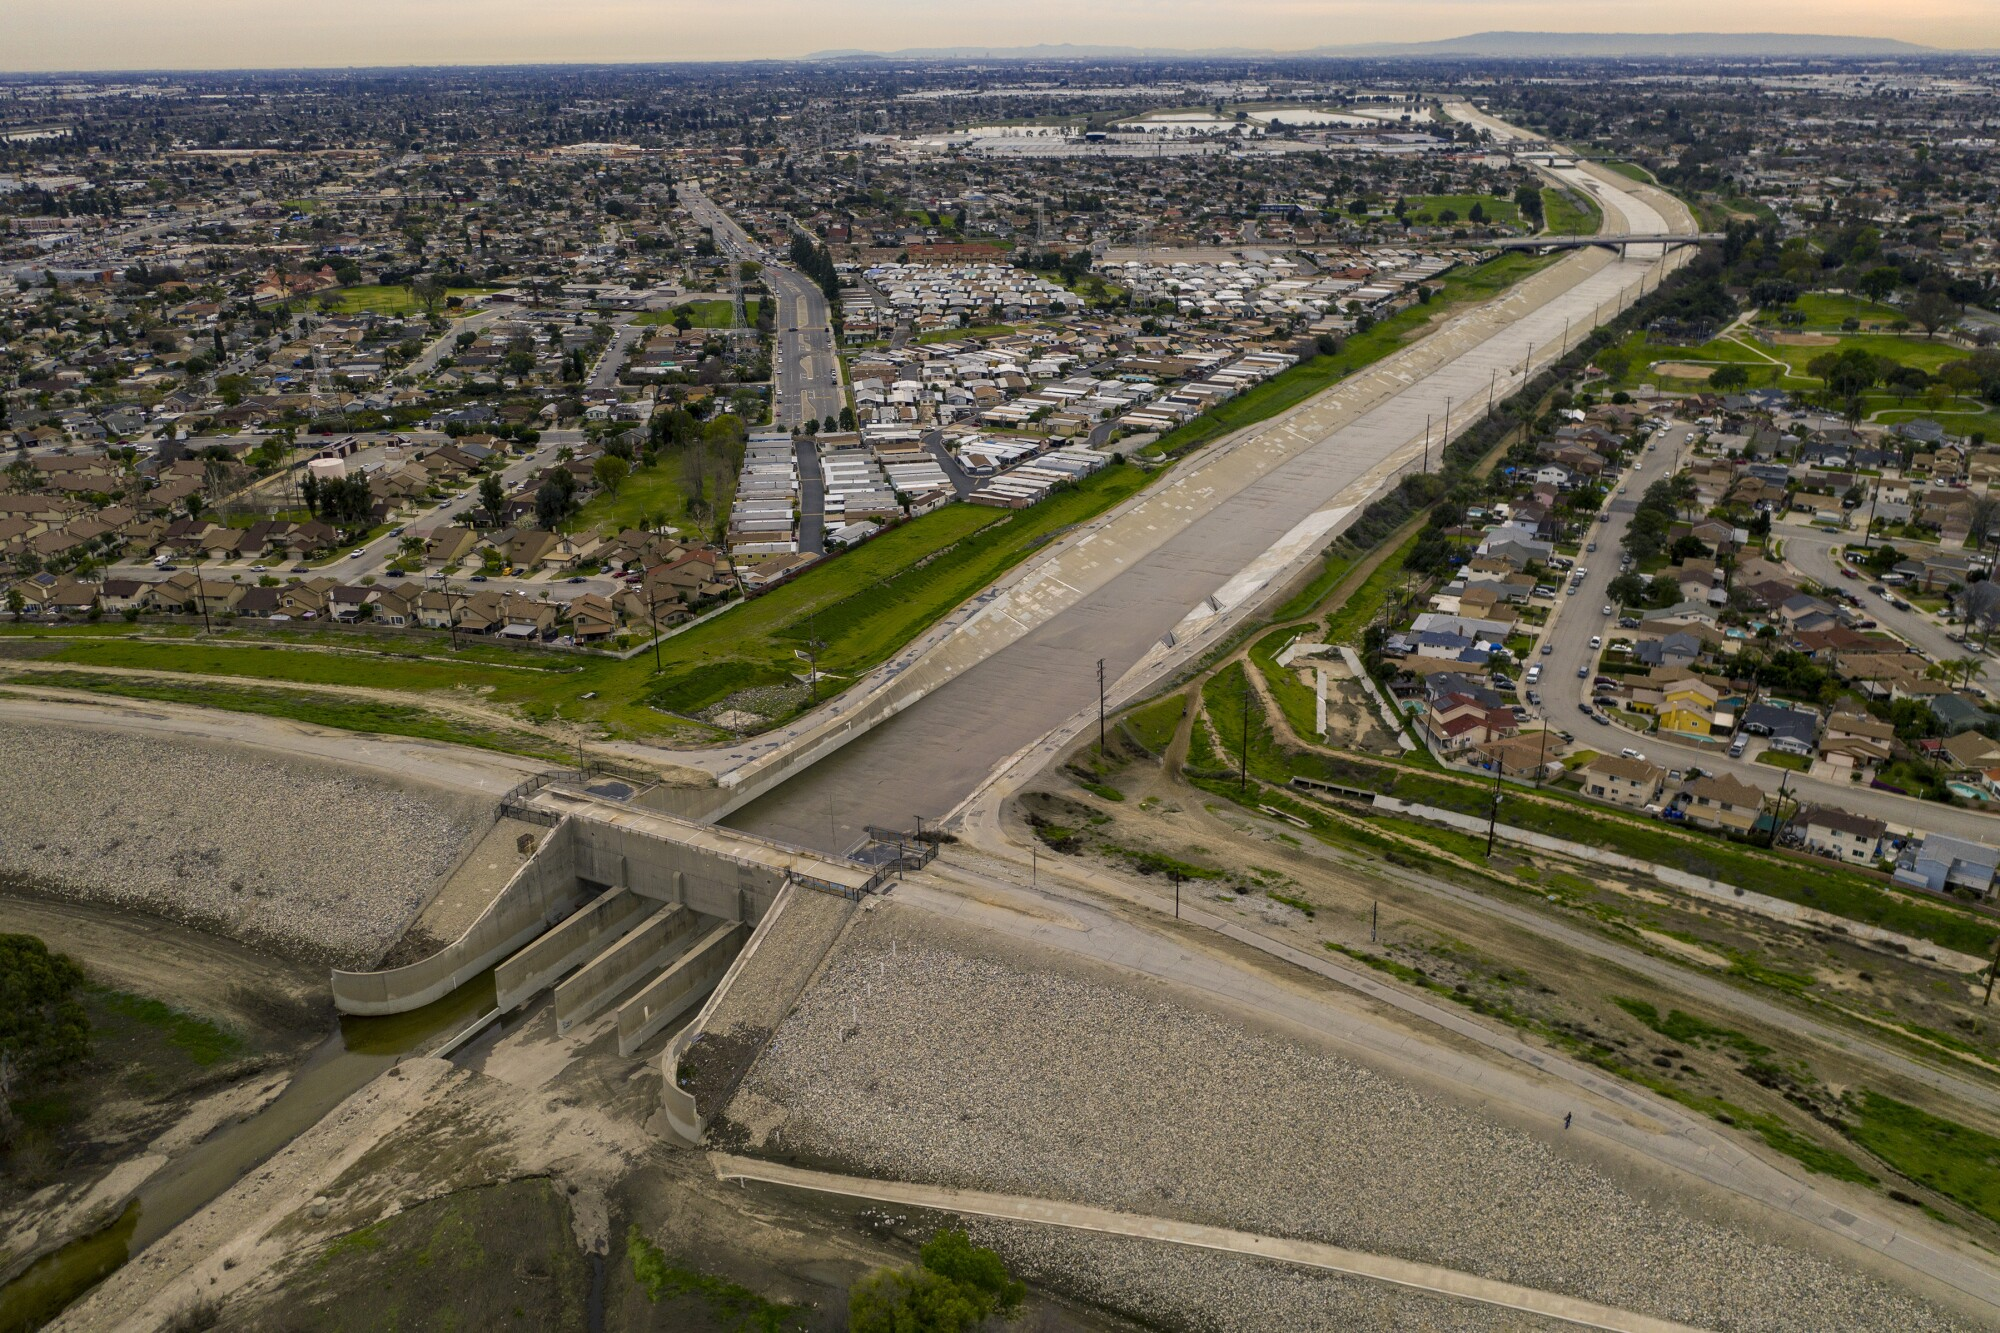 An aerial view of the Whittier Narrows Dam in the area between Montebello and Pico Rivera in Montebello